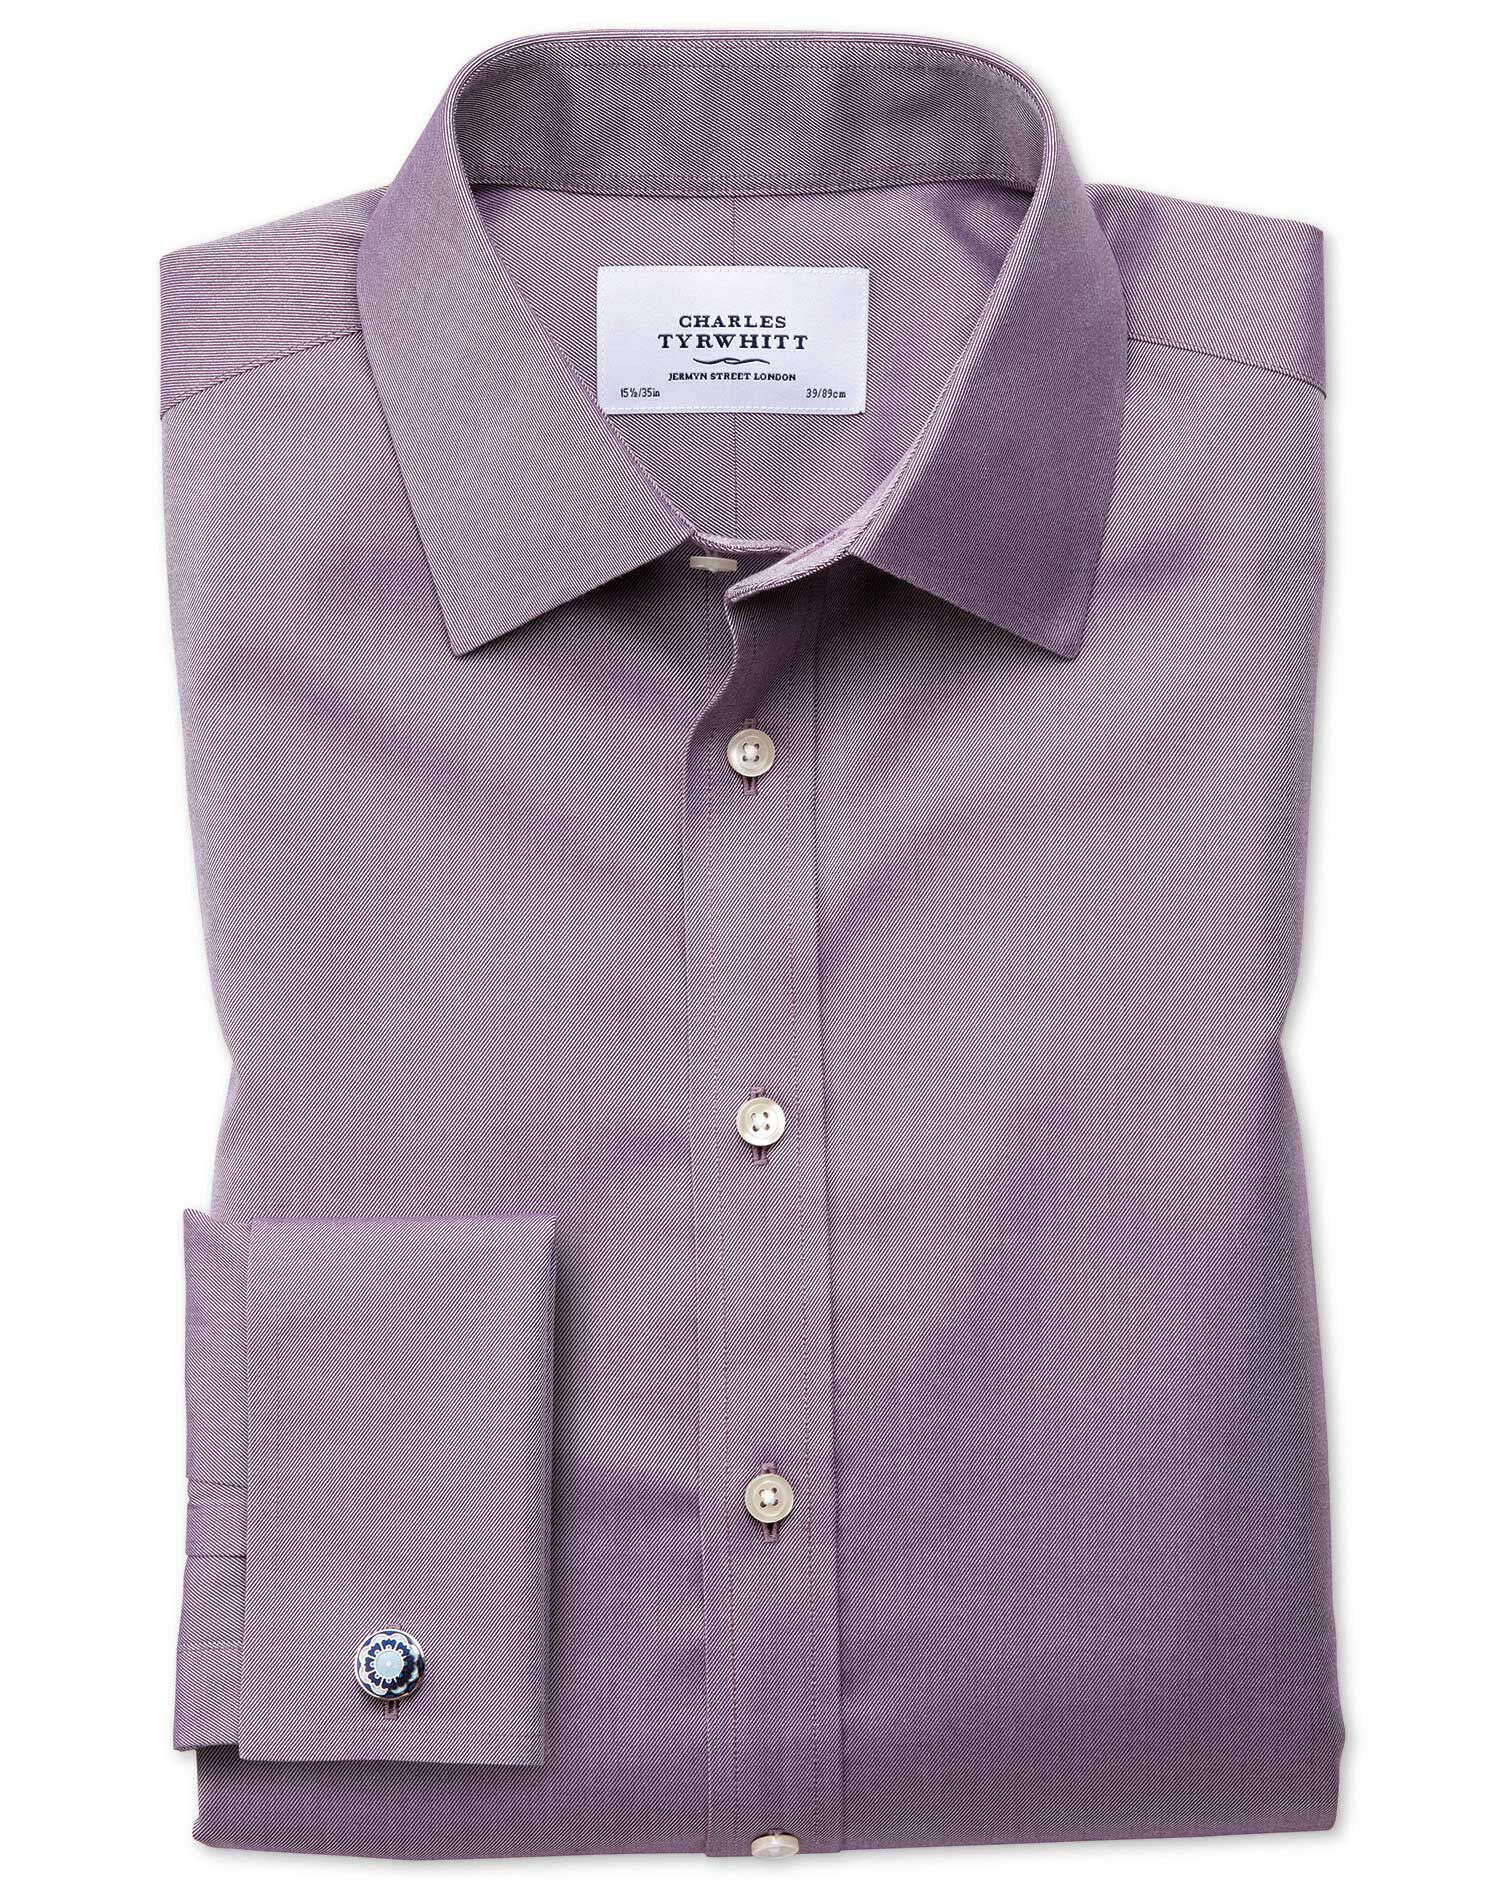 Classic Fit Non-Iron Twill Dark Purple Cotton Formal Shirt Double Cuff Size 15.5/32 by Charles Tyrwh